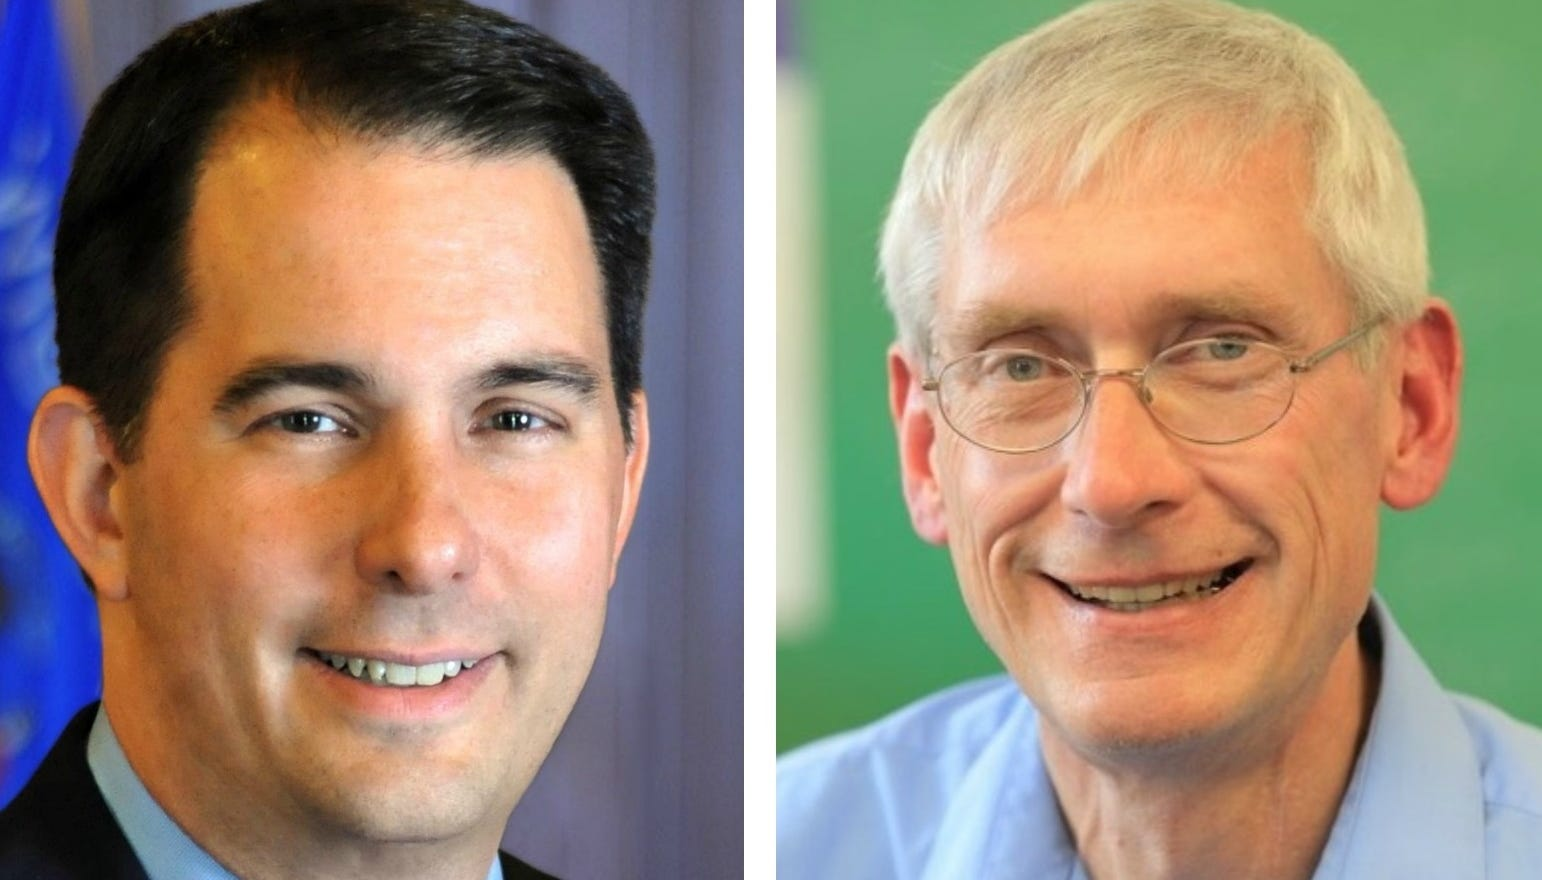 Education is the one issue both Scott Walker and Tony Evers are hitting hard in their campaign ads